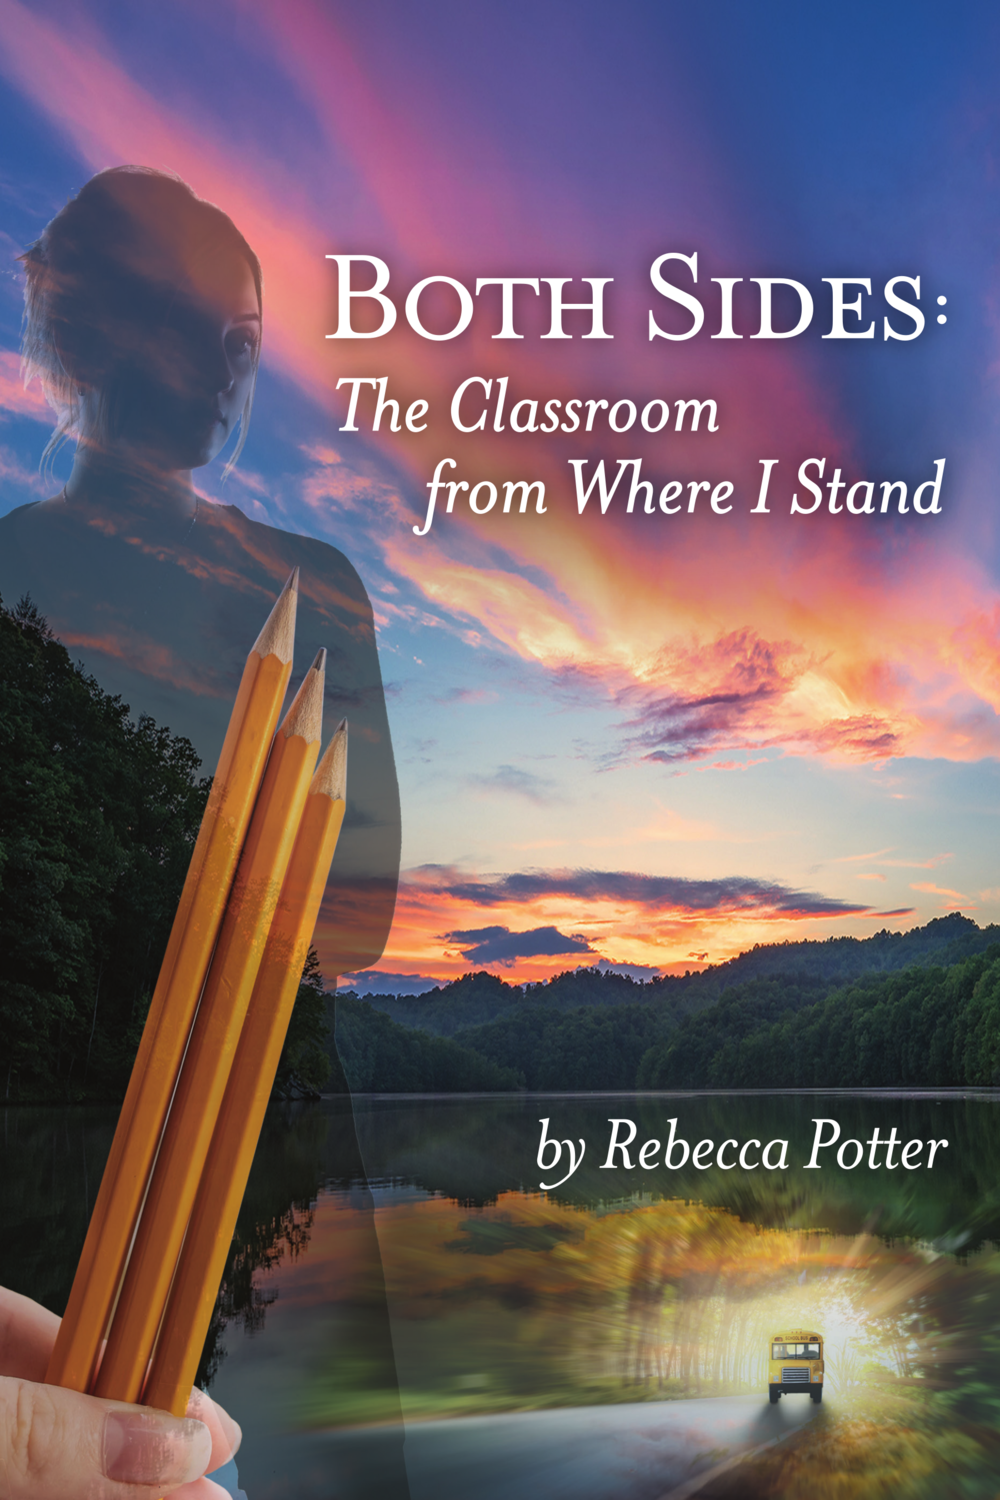 Both Sides: The Classroom From Where I Stand, by Rebecca Potter